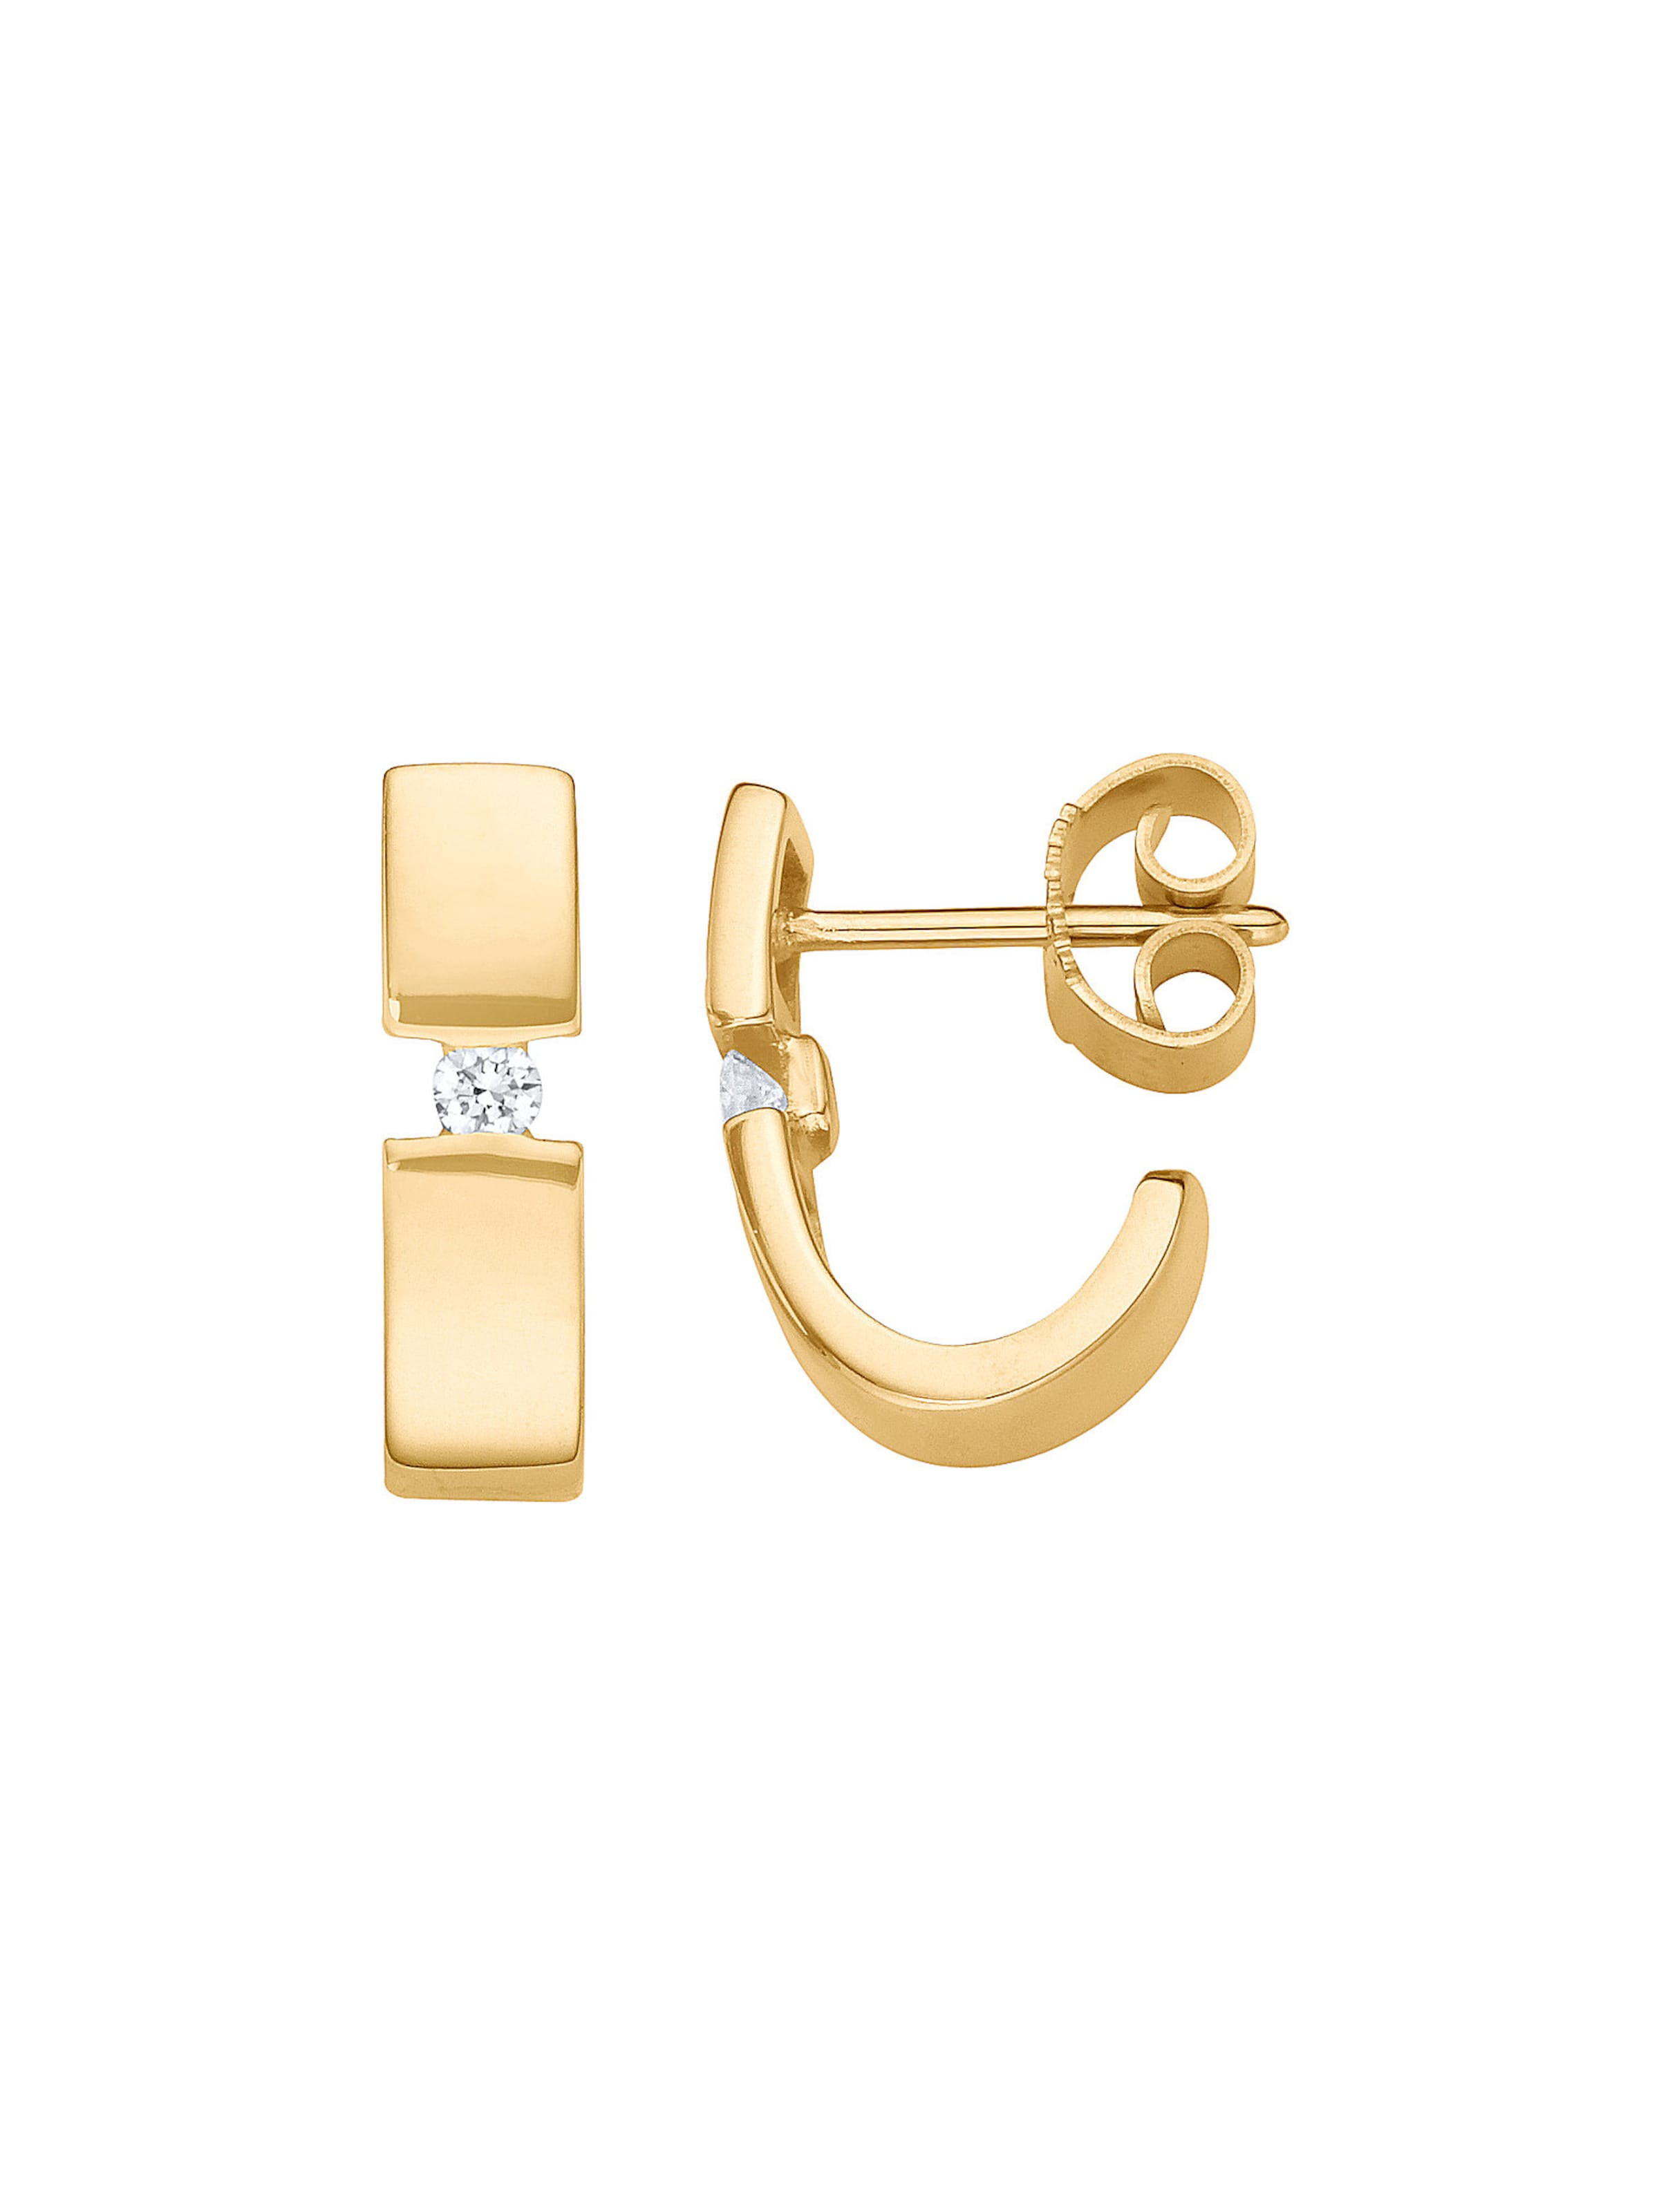 Gold Christ Christ '86219913' Ohrstecker Christ Ohrstecker '86219913' In In Ohrstecker Gold rdxsCBthQ